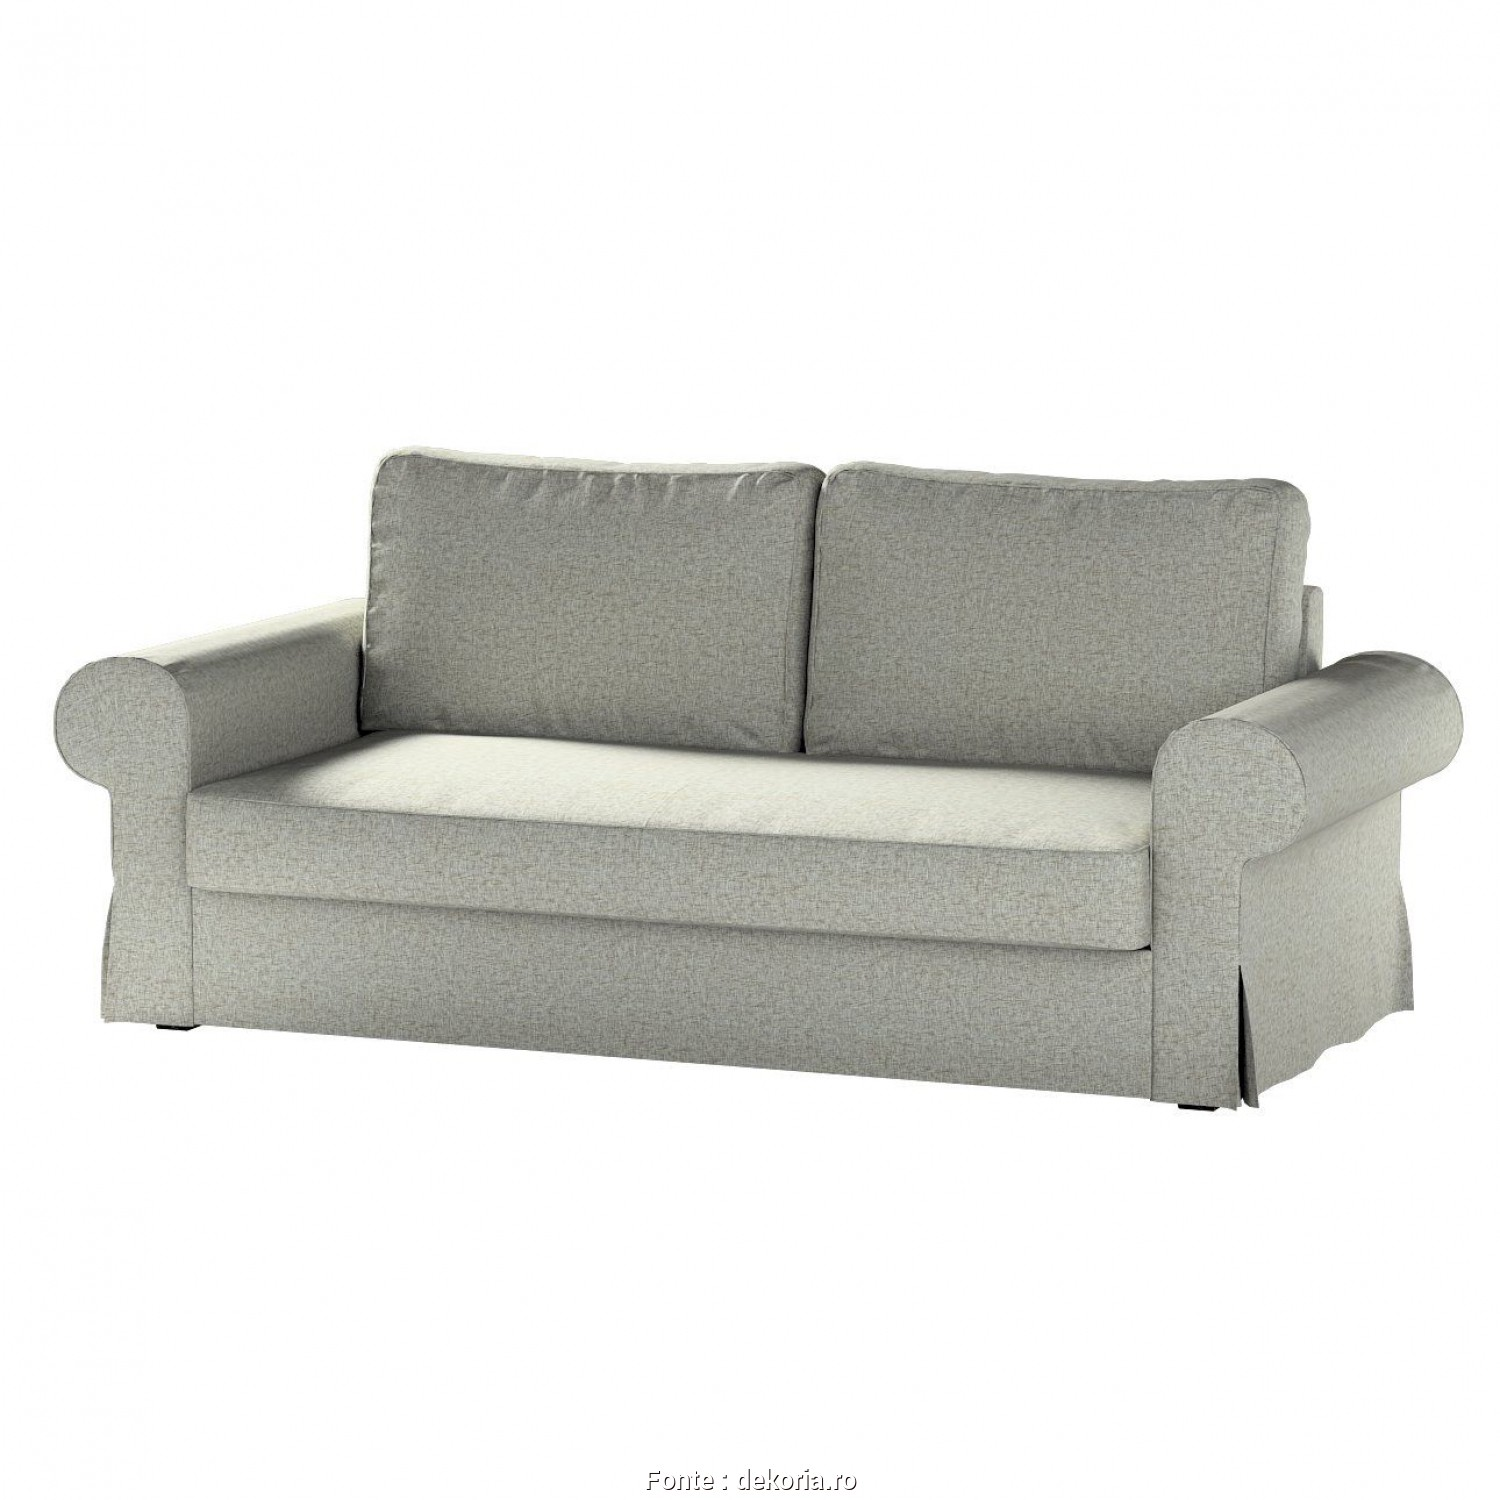 Husa Canapea Ikea Beddinge, Eccellente Backabro 3-Seat Sofa, Cover In Collection Sufragerie, Fabric: 106-96